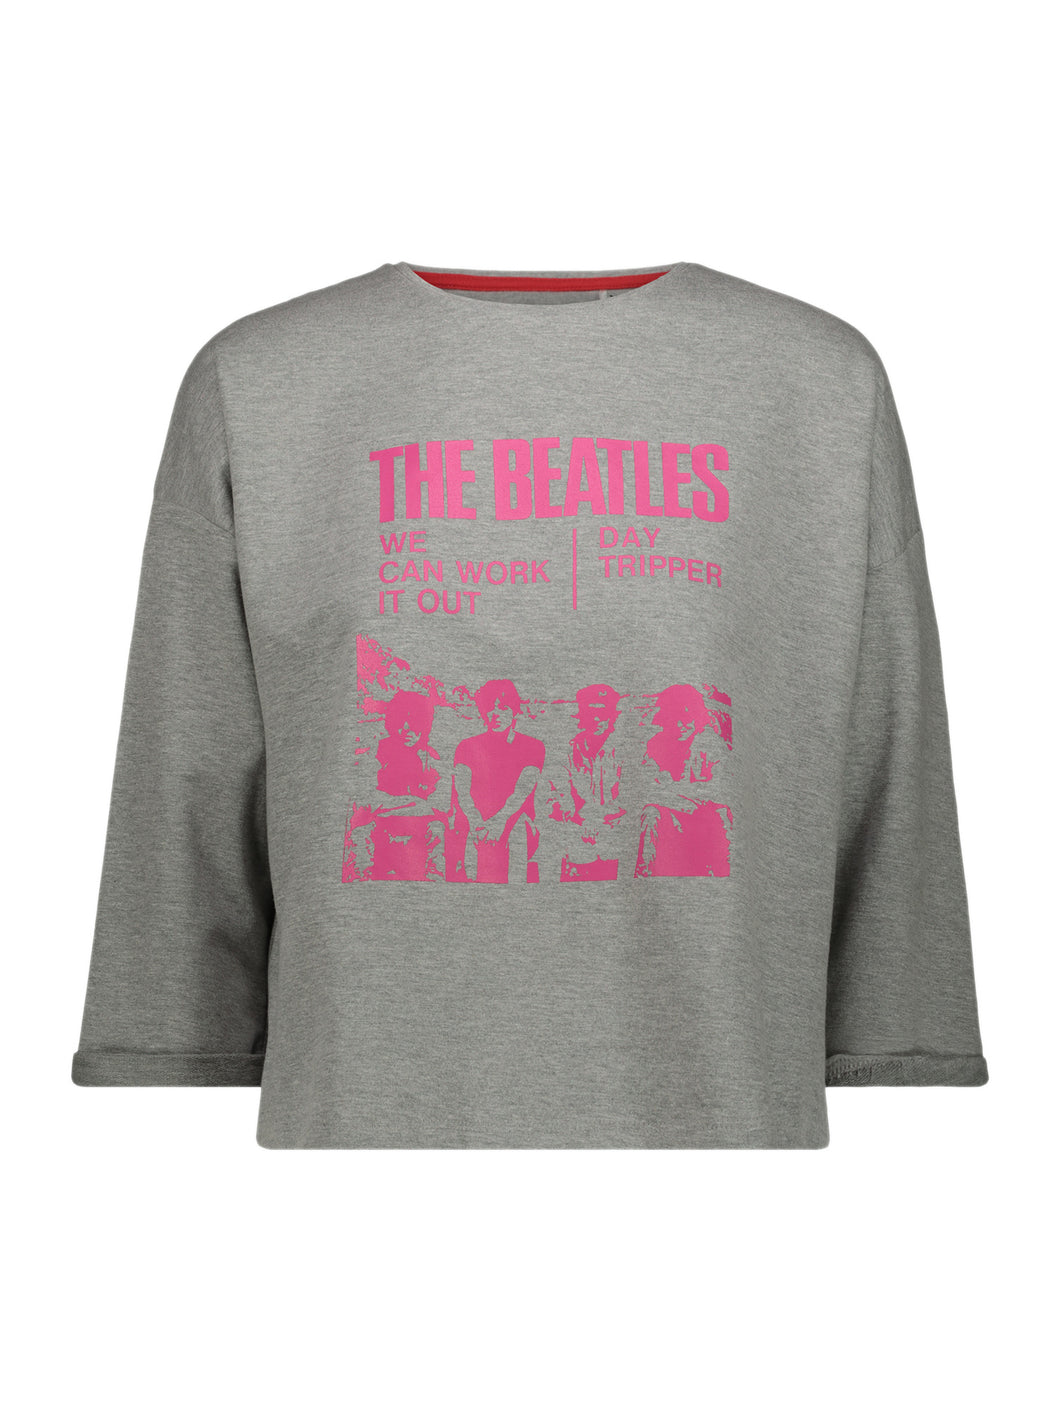 Mkt studio T-SHIRT Beatles